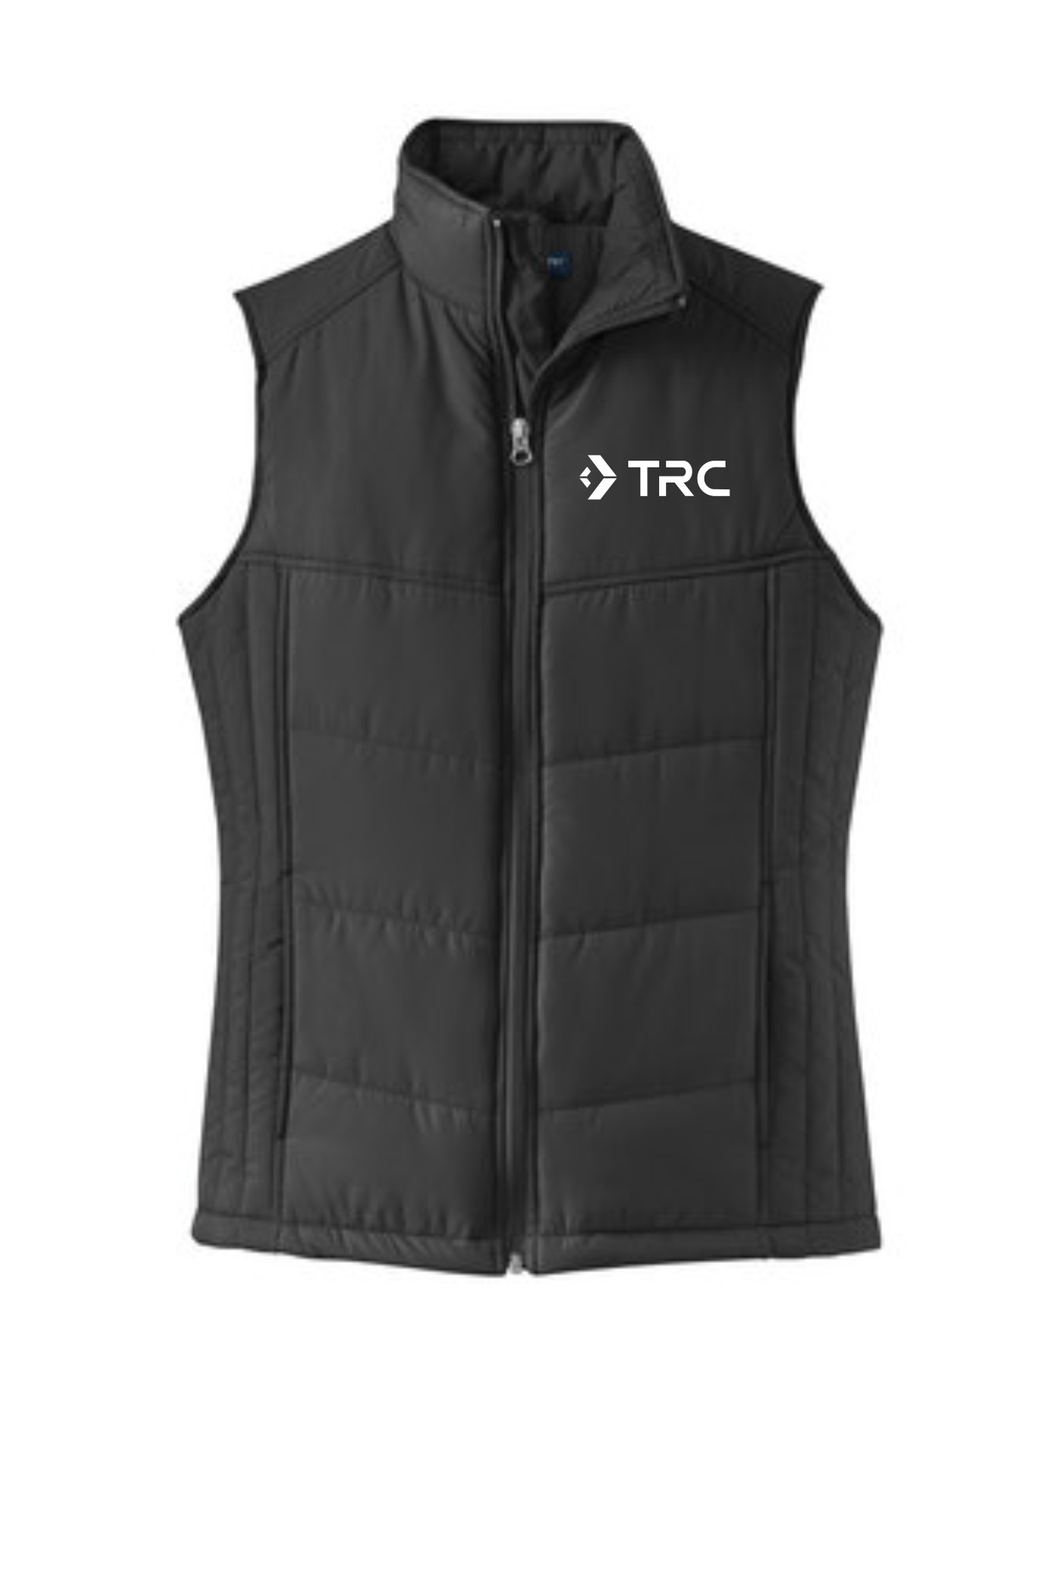 TRC - Port Authority Ladies Puffy Vest